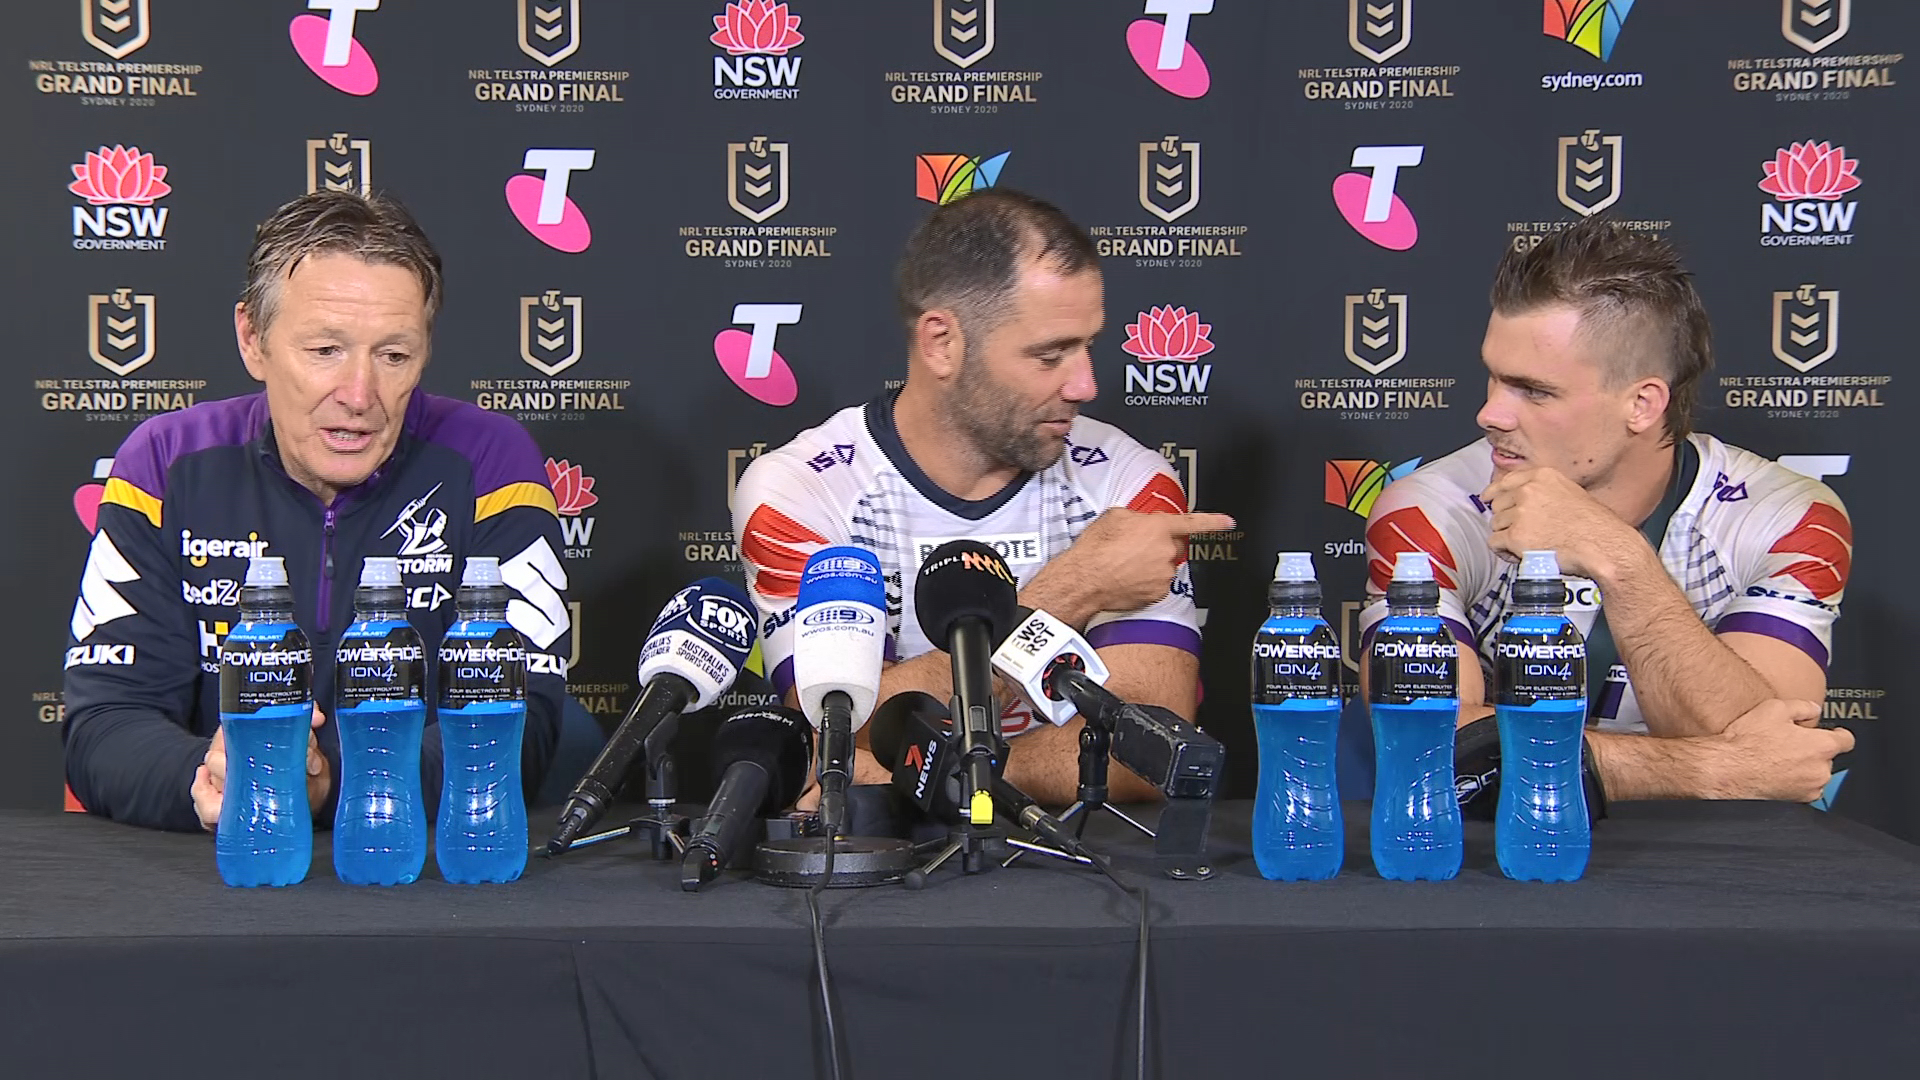 Panthers v Storm Grand Final Presser: Craig Bellamy, Cameron Smith & Ryan Papenhuyzen